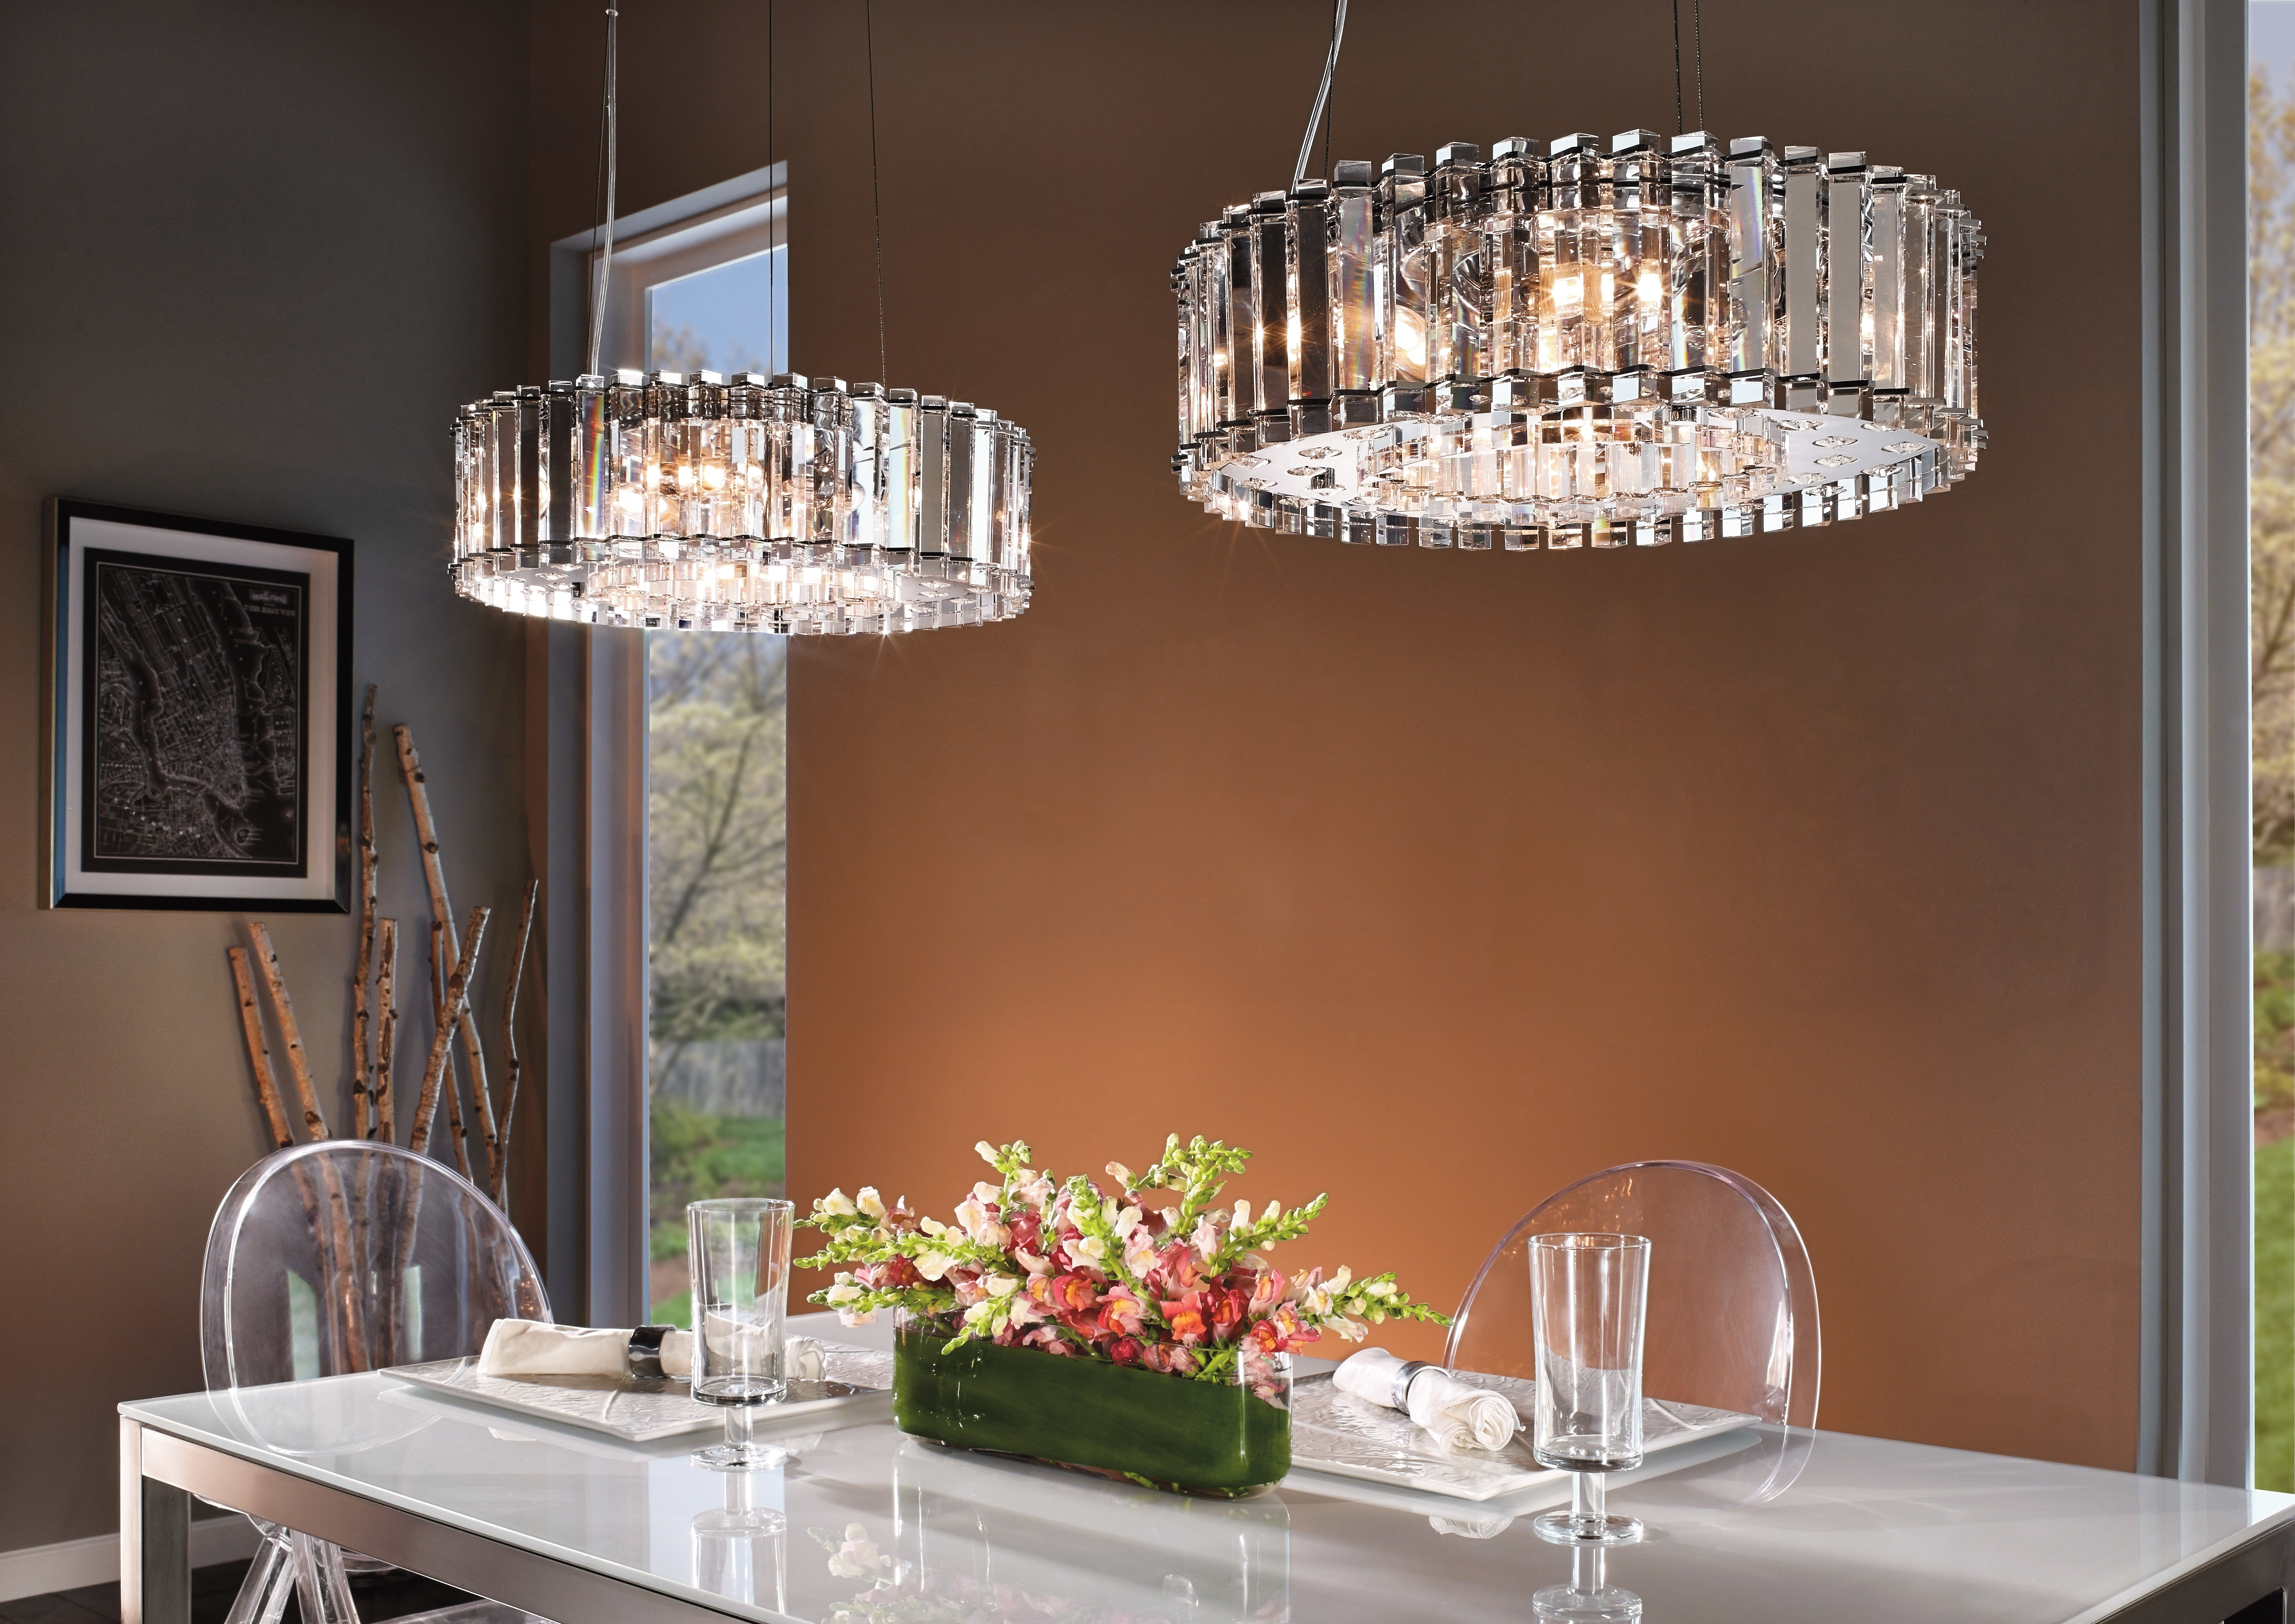 Wall Mounted Chandelier Lighting Pertaining To Most Popular Fresh New Wall Mounted Chandelier Lighting Bl3L7 # (View 7 of 15)